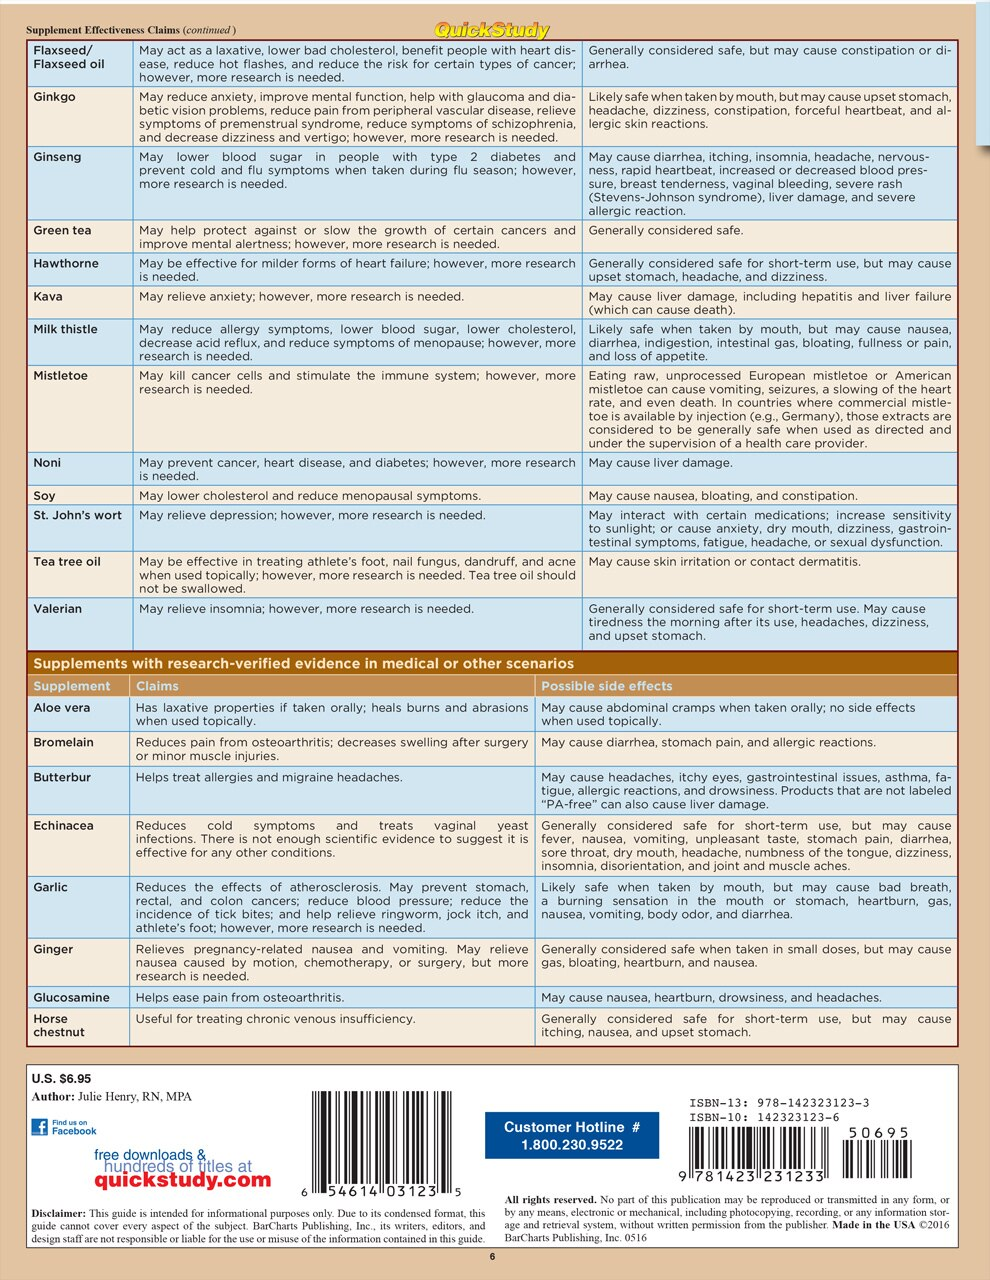 Quick Study QuickStudy Nutrition: Superfoods & Supplements Laminated Reference Guide BarCharts Publishing Health & Medical Reference Back Image